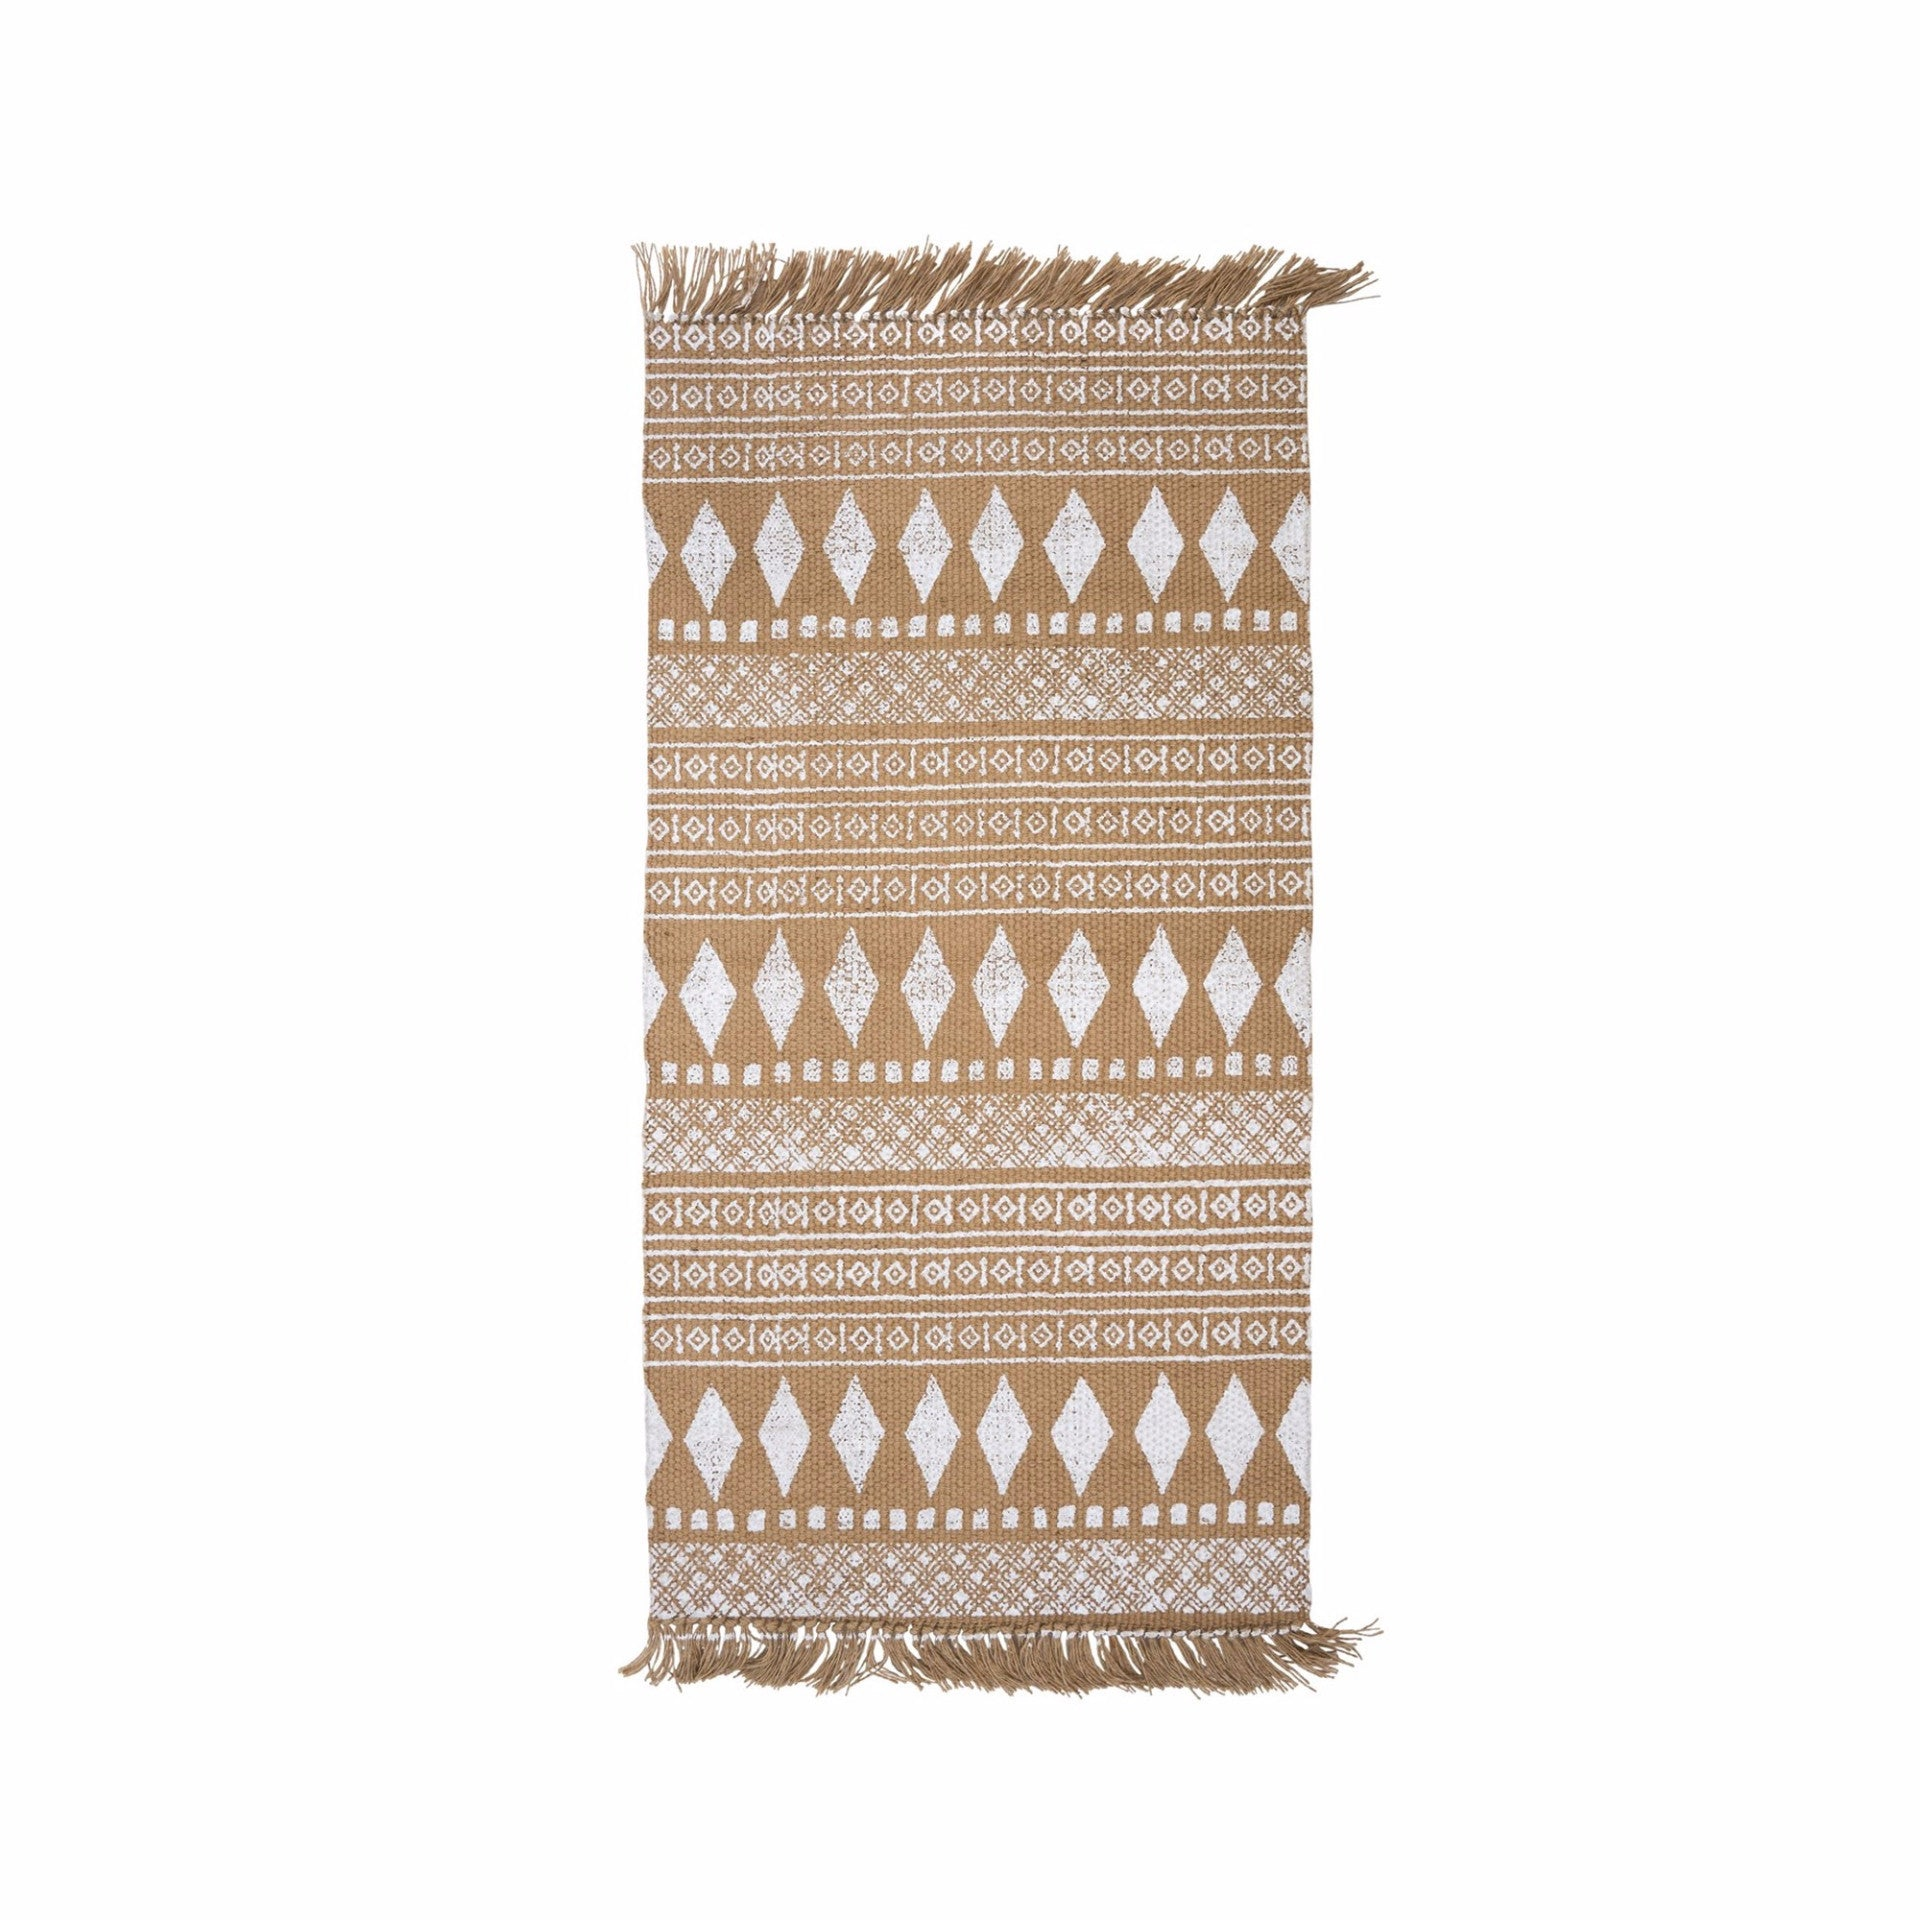 Jute Rug White Print, IT-Indaba Trading, Putti Fine Furnishings